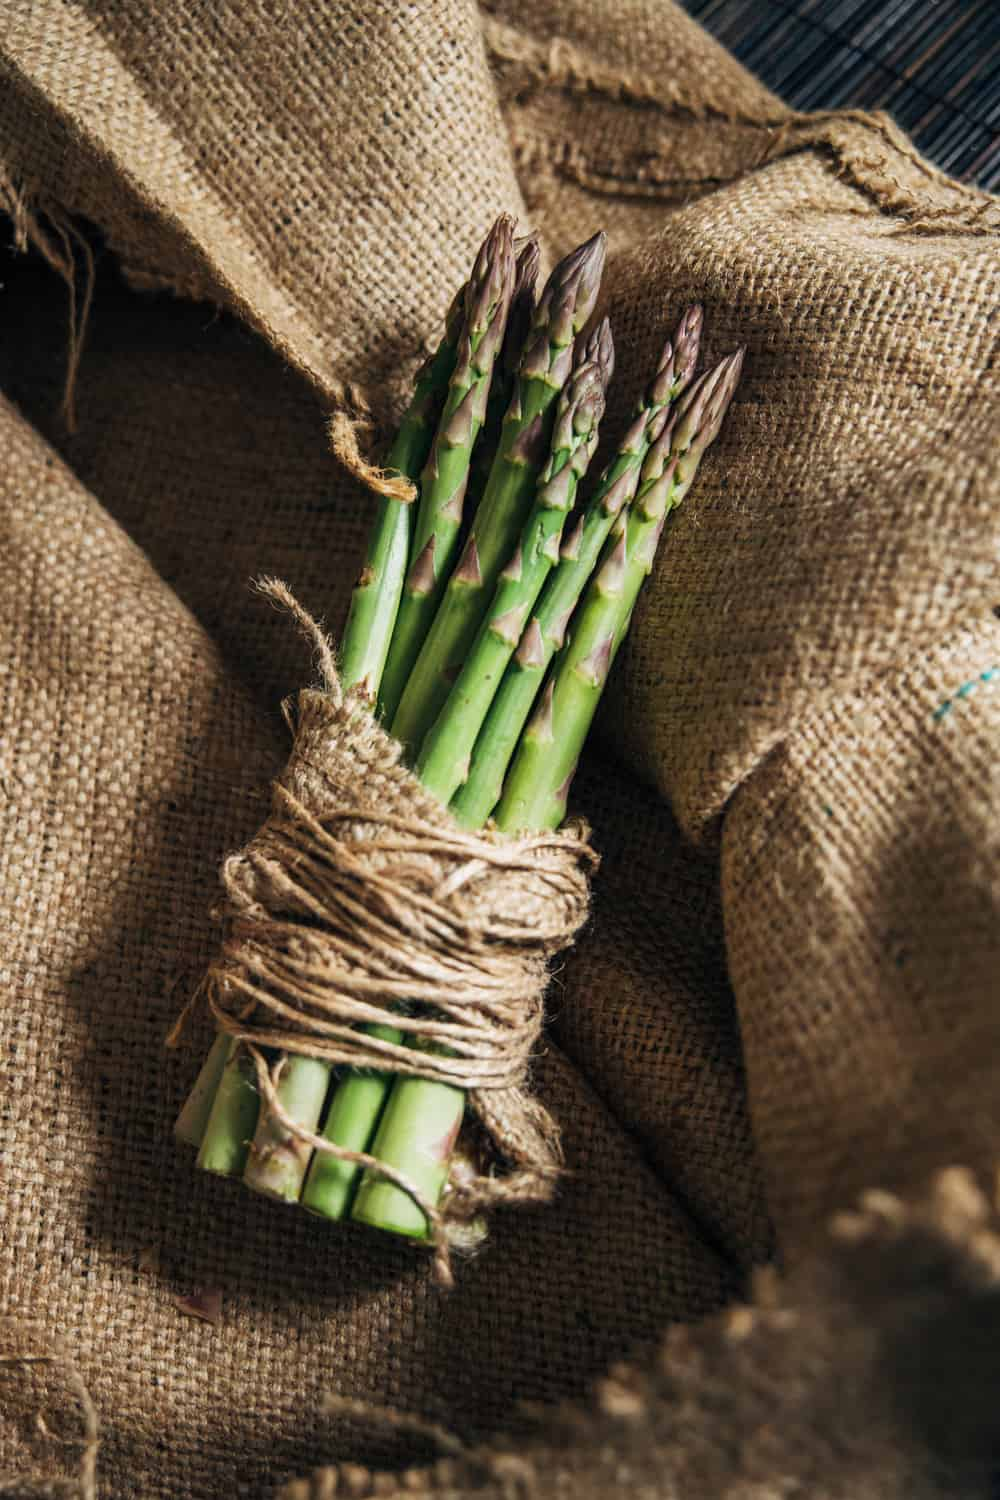 How to Tell if Asparagus has Gone Bad